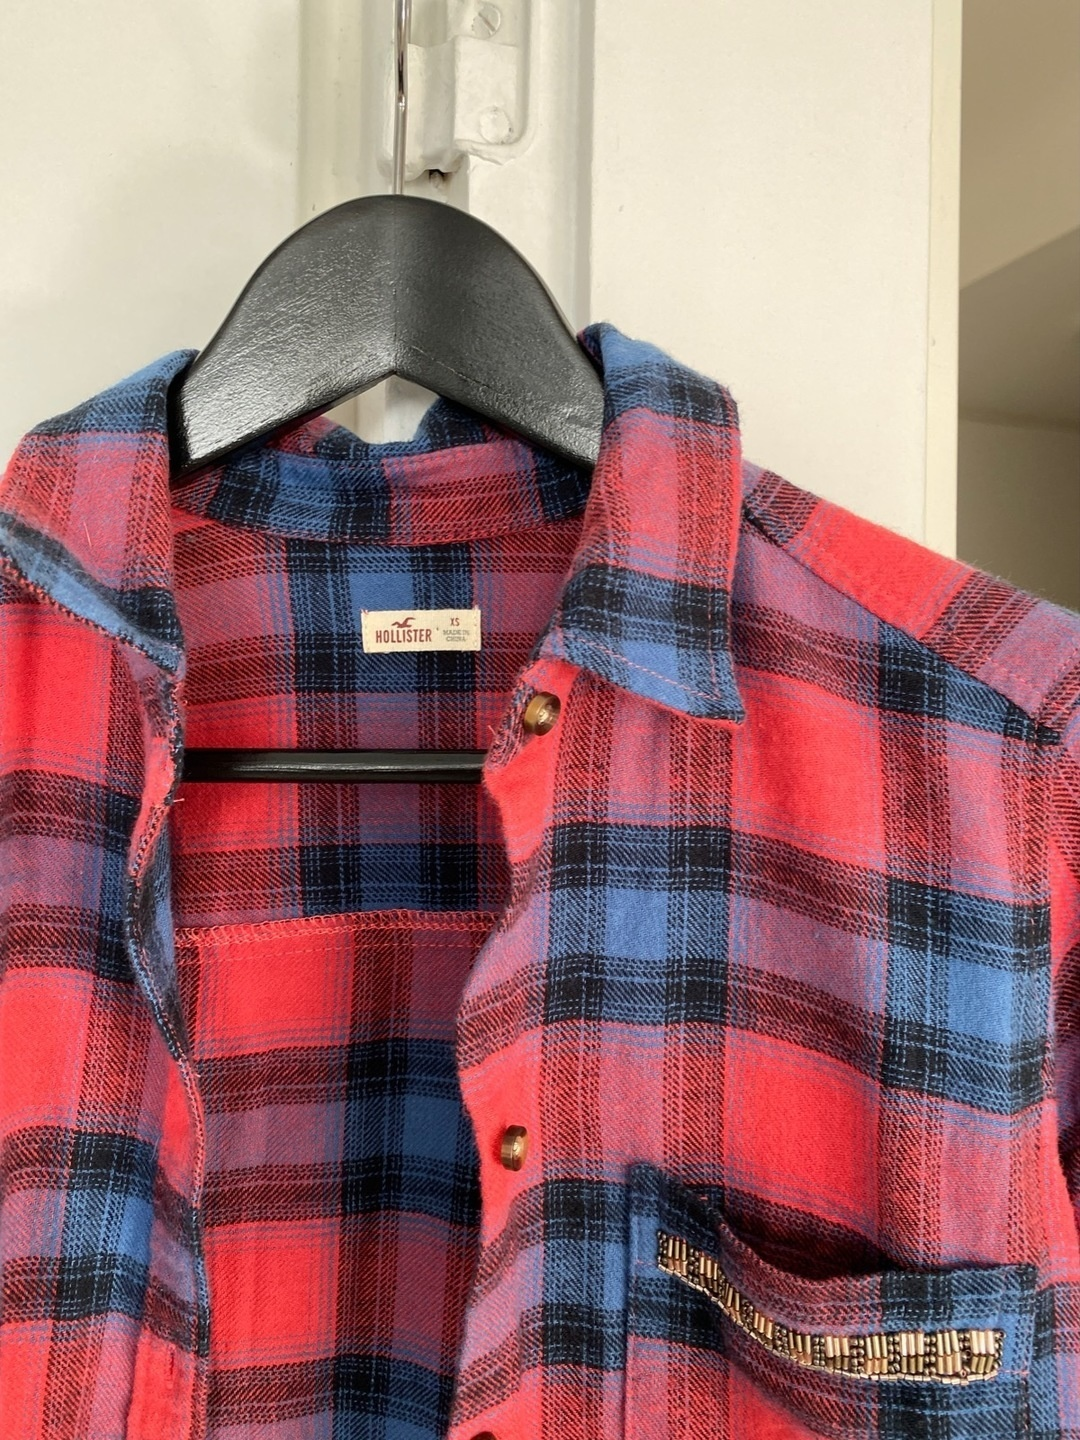 Women's blouses & shirts - HOLLISTER photo 2